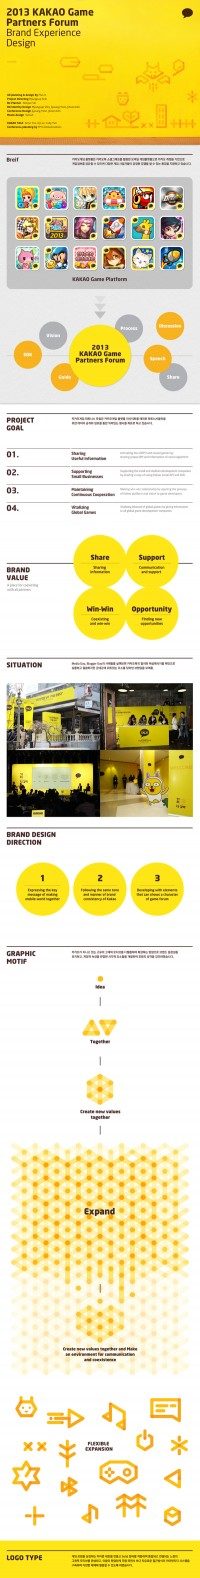 KAKAO Game Partners Forum Brand eXperience Design on